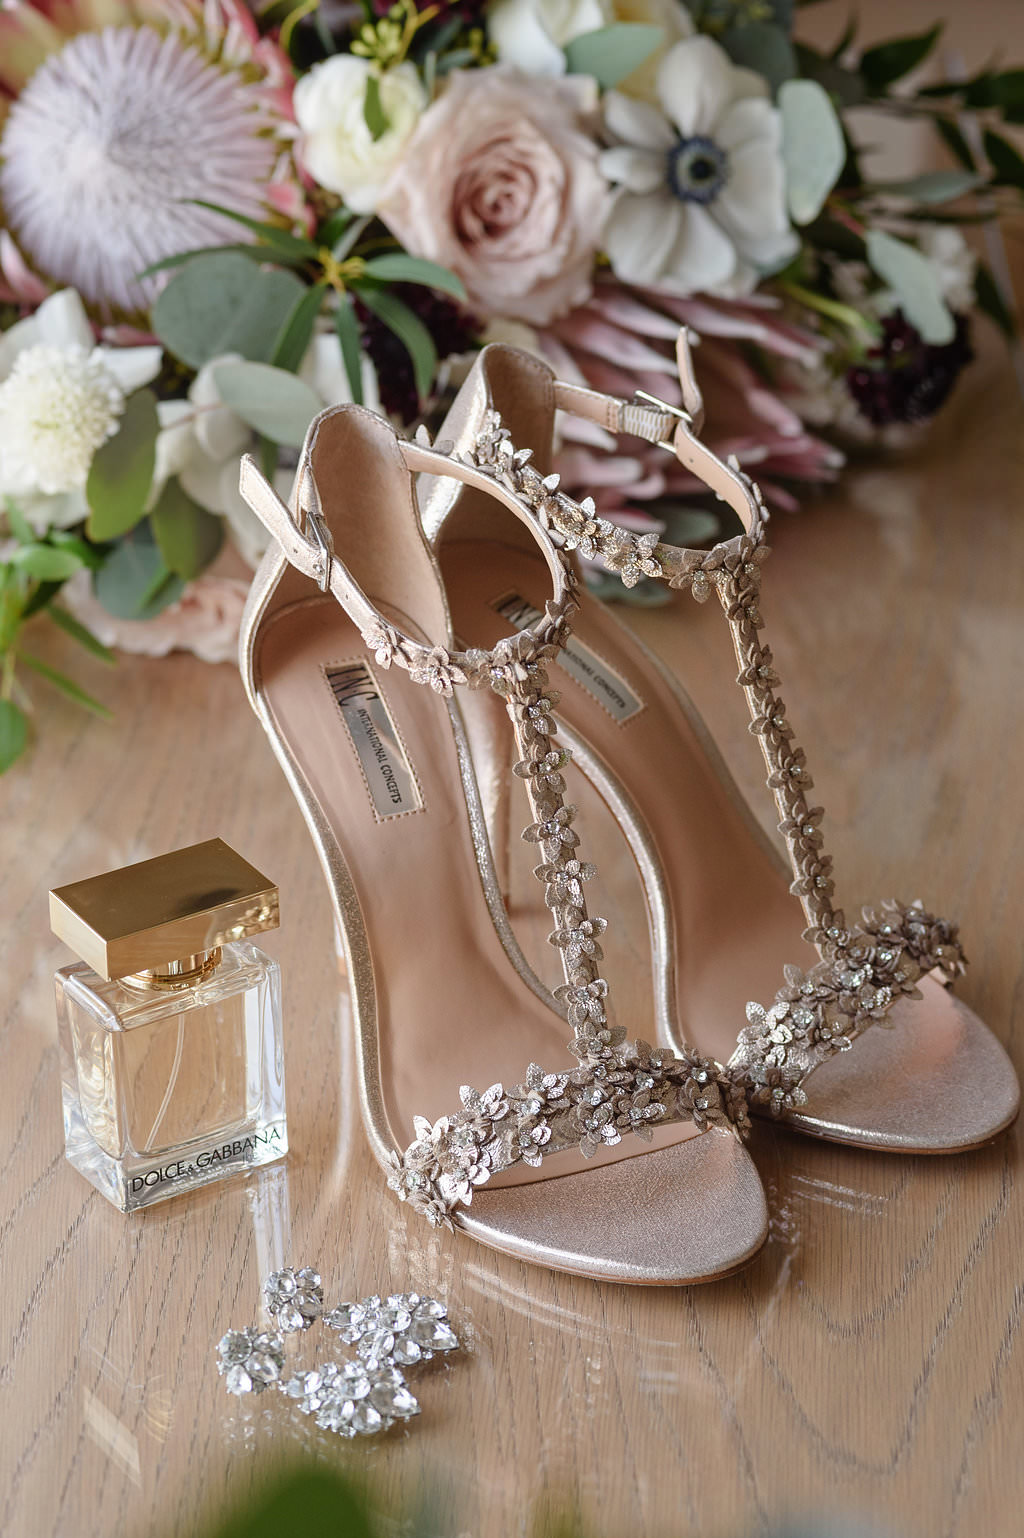 INC Beaded Open Toe Wedding Shoes with Bridal Accessories and Blush Pink, White Floral Anemone and Protea Bouquet with Greenery